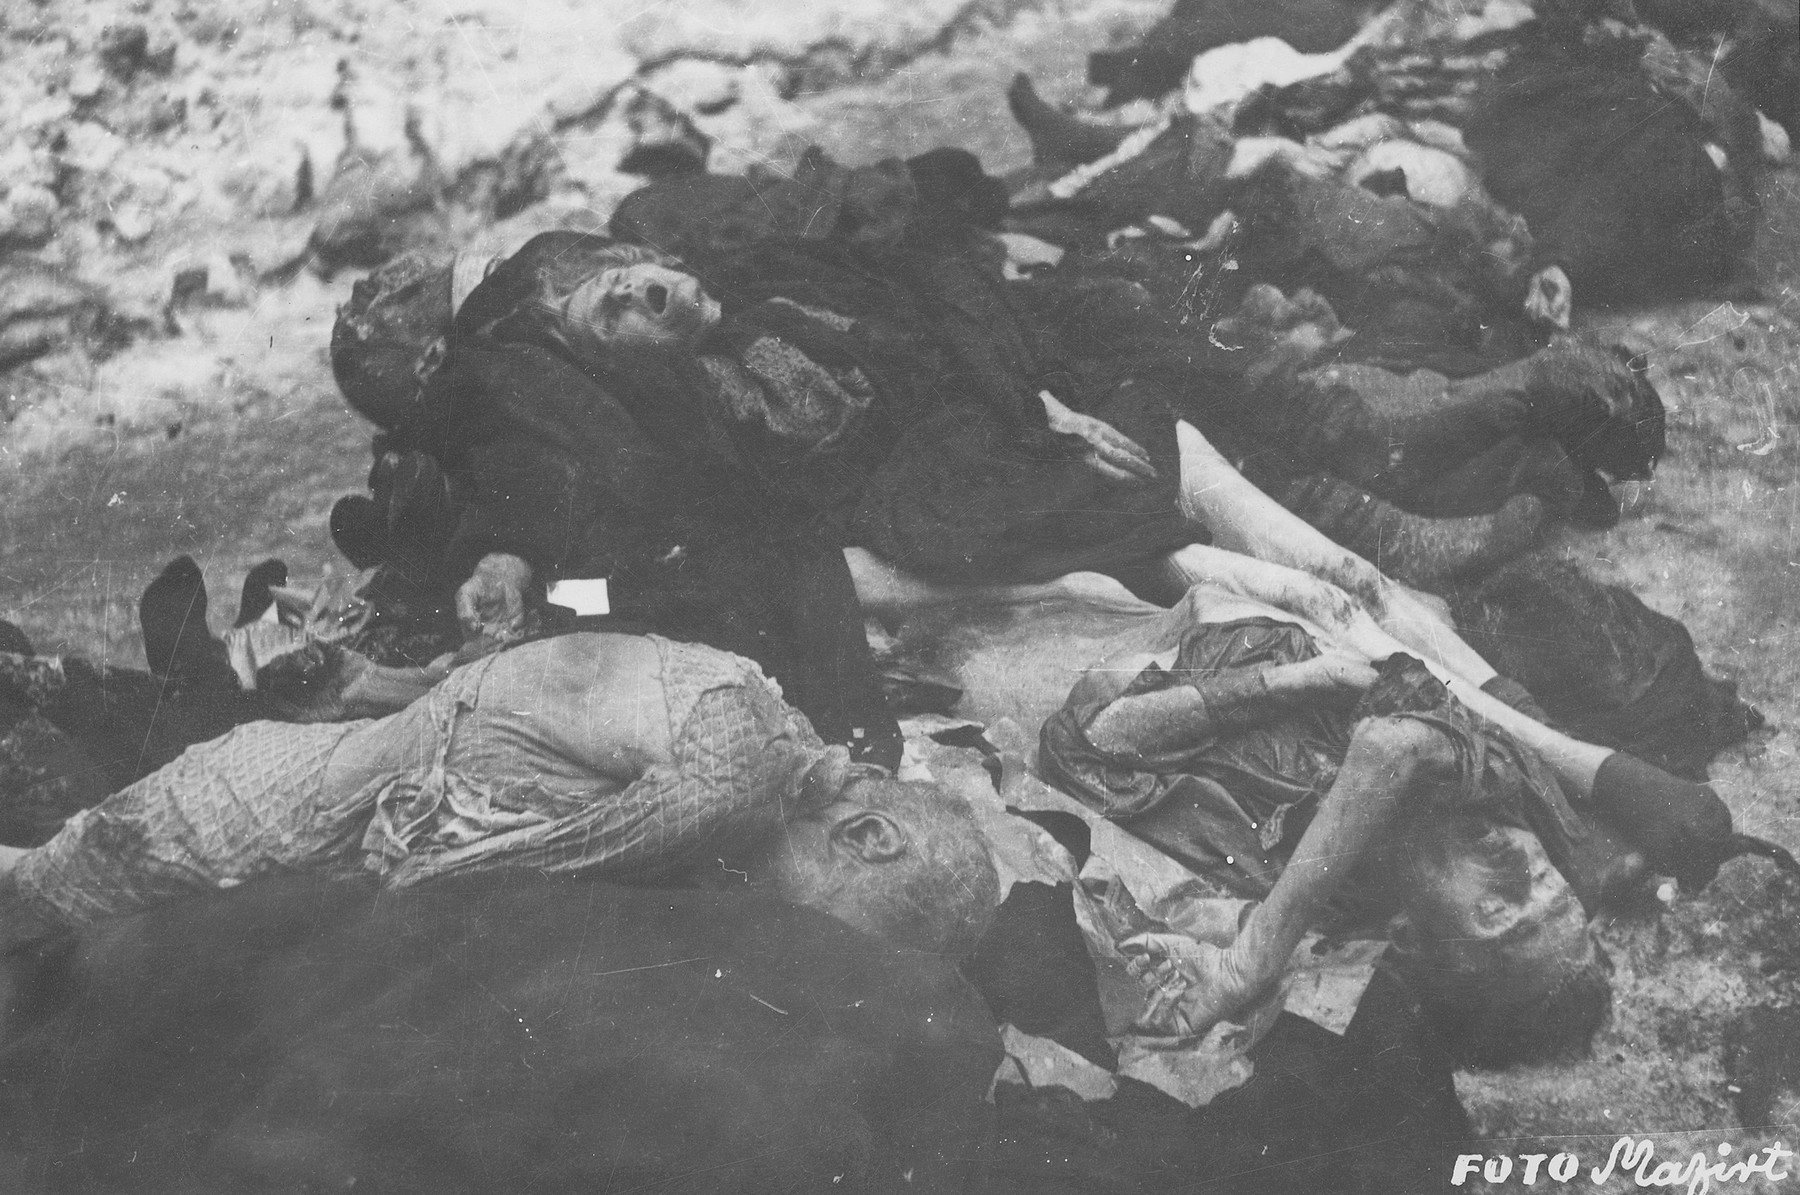 "The corpses of Jews in the courtyard of the Dohany Street Synagogue.  During the last few months of the war in Hungary, the Nyilas (Arrow Cross) exploited the anarchic conditions in the areas still under their control to continue their excesses against the Jews.  This was particularly true in Budapest, despite the fact that the Soviet army had completely encircled the city by December 27, 1944.  The reign of terror that had begun with Szalaszi's assumption of power on October 15, 1944, went almost completely unchecked after the beginning of the Soviet siege on December 9.  Gangs of armed Nyilas--mostly teenagers--roamed the city hunting for Jews in hiding.  They searched them out in hospitals, shelters, homes outside the ghetto, in the International Ghetto, and in the large ghetto.  After robbing the Jews of their remaining valuables, the Nyilas shot them on the spot or marched them to the banks of the Danube, where they shot them, and threw their bodies into the river.  A large number of Jews who were murdered in the ghetto were buried in mass graves in the courtyard of the Dohany Street Synagogue.  The most horrific of these attacks occurred on the Pest side of the capital, at the two Jewish hospitals located on Maros and Varosmajor streets.  The Maros Street hospital, which had operated under the protection of the International Red Cross during the German occupation, was attacked on January 11, 1945.  After the initial melee, during which Nyilas gang members wantonly destroyed hospital equipment, threw patients out of their beds and trampled them, and murdered staff members, survivors were ordered to dig a mass grave, remove and bury the bodies.  They were then shot and buried in the grave themselves.  Only one nurse survived of the 92 people that were in the hospital at the time.  Three days later, on January 14, the hospital on Varosmajor Street was attacked, resulting in the deaths of 150 patients and medical staff.  These manhunts and massacres continued unabated until the liberation of Budapest in April.  [R. Braham, ""The Politics of Genocide,"" vol. 2: 995-1007]"